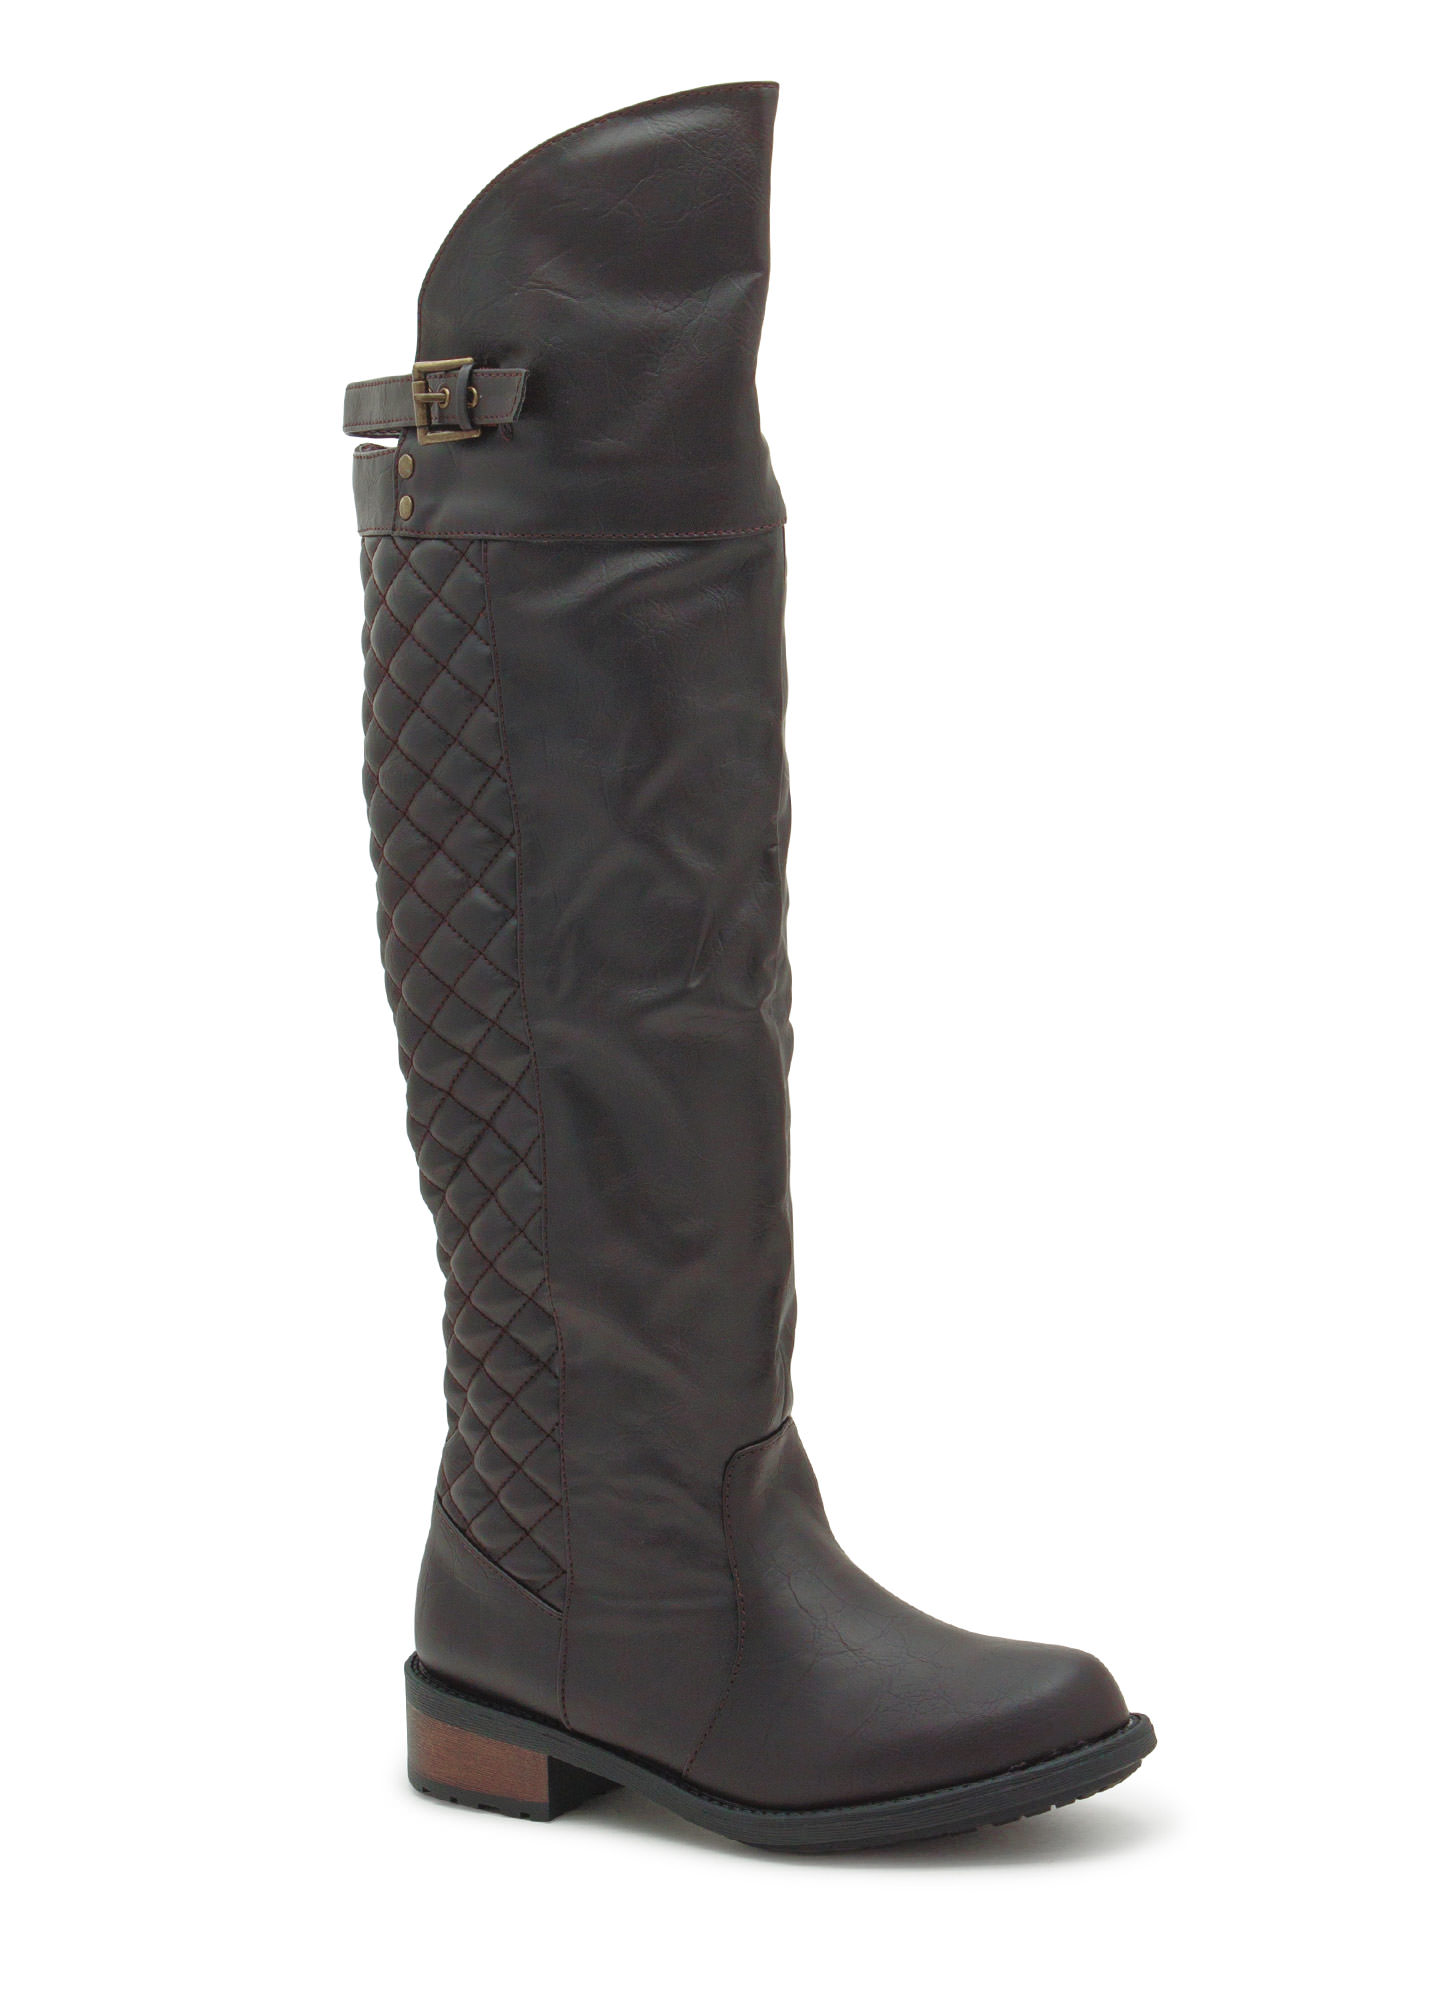 Quilty Pleasure Over-The-Knee Boots BROWN